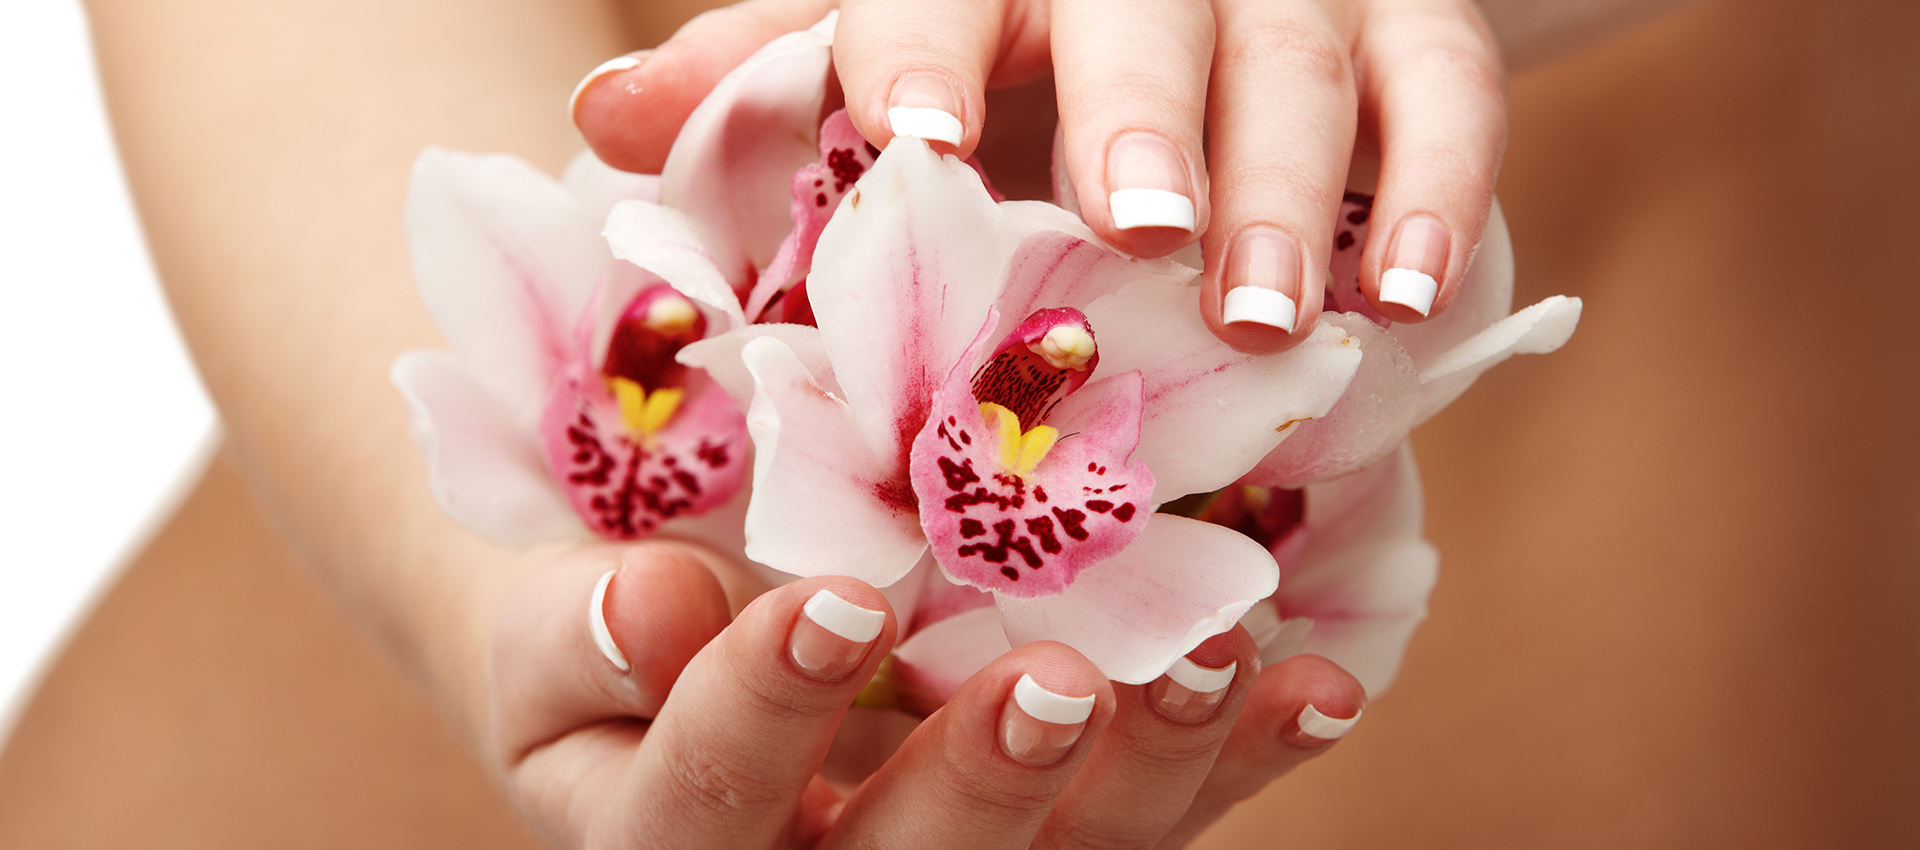 T B Nice One Nails Waxing And Pedicures In Calgary Chestermere